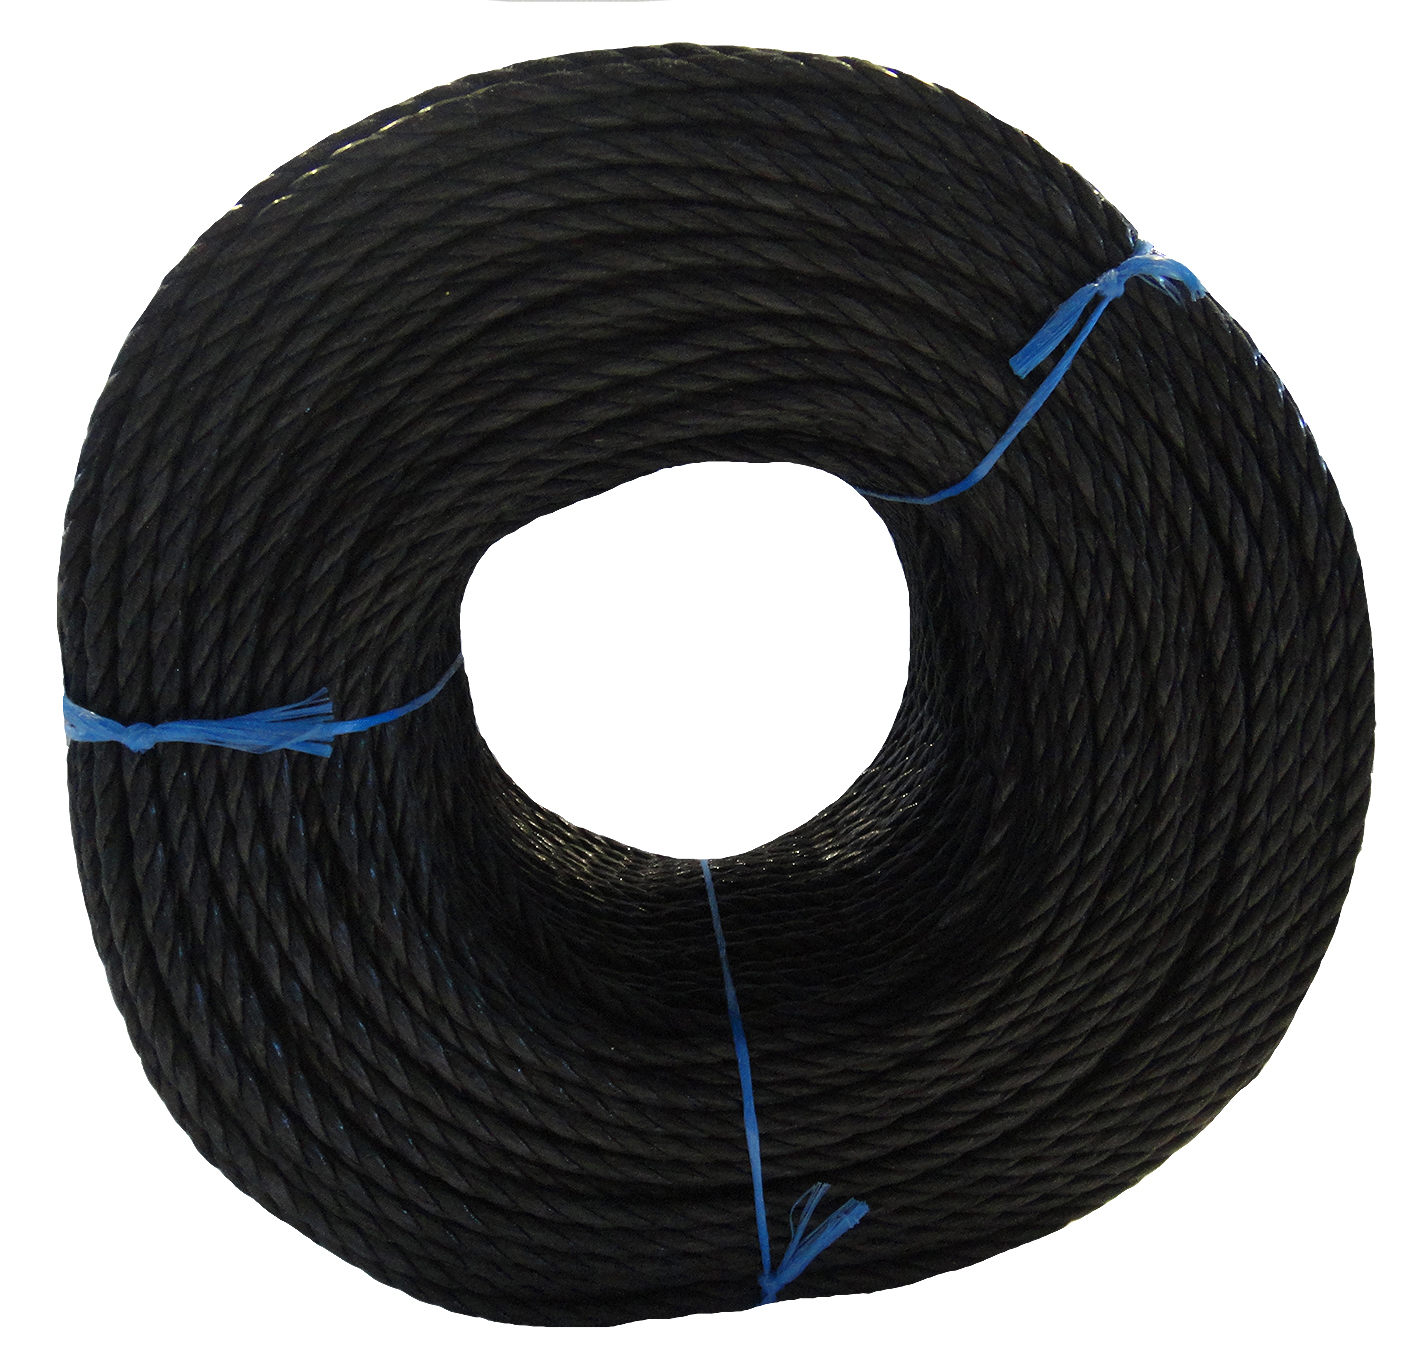 Polypropylene rope - 16mm Dia Black x 220m Coil